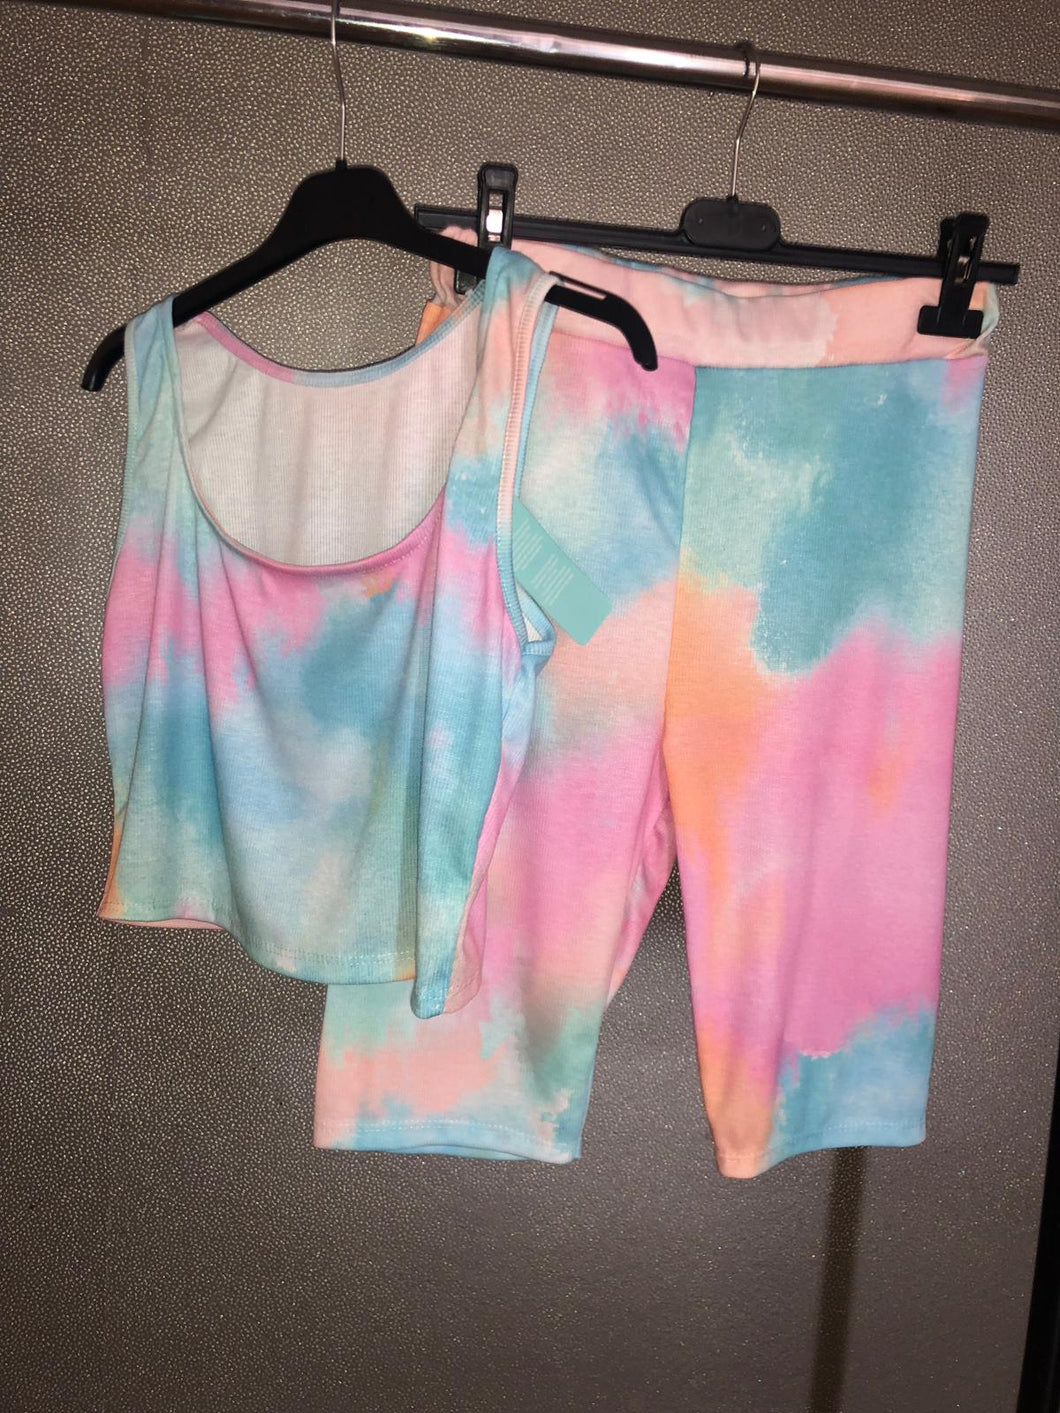 Alexis Tie Dye Crop Top Shorts Set - Pink & Blue